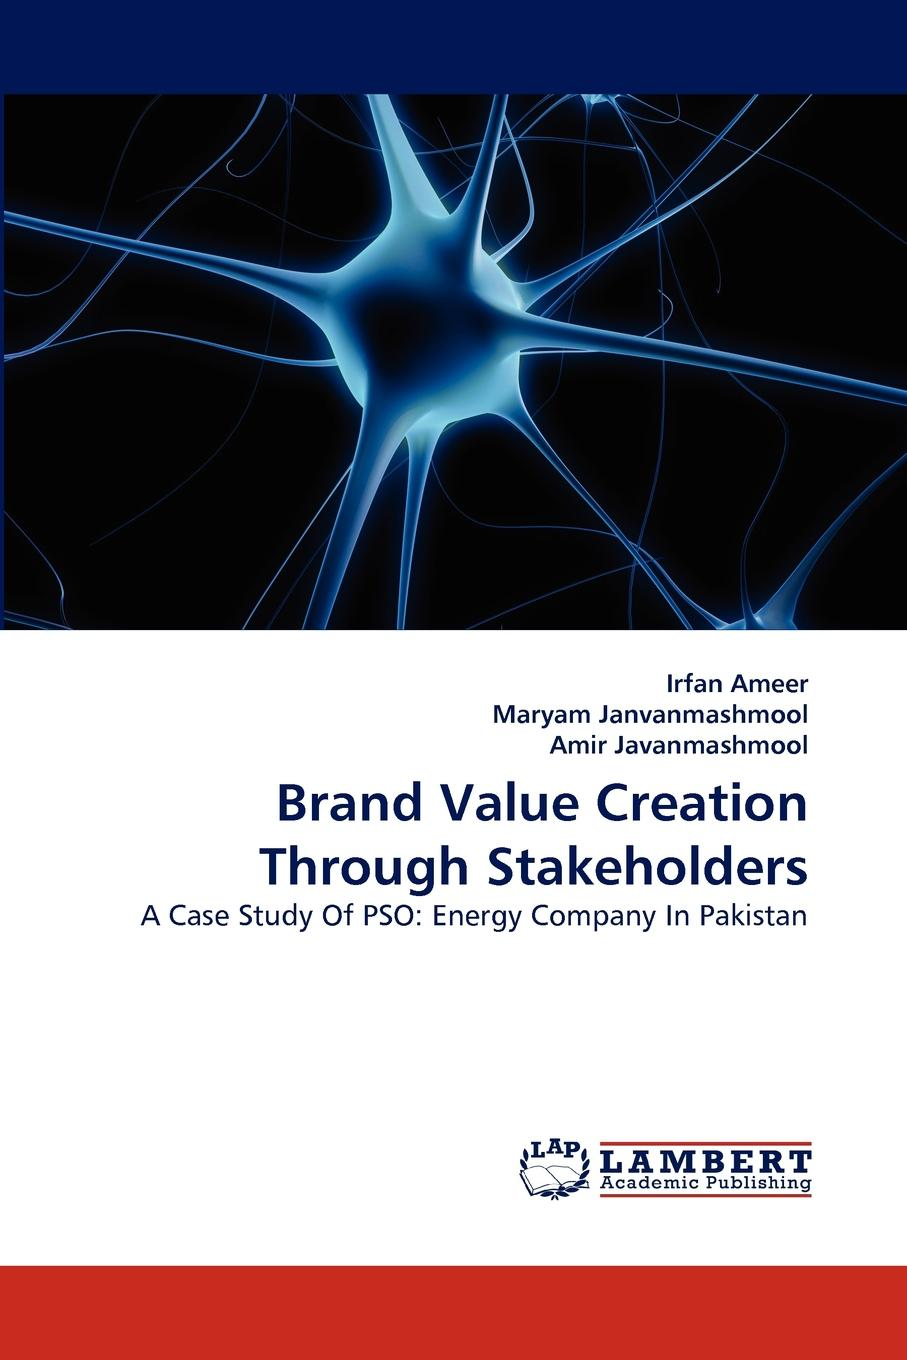 Irfan Ameer, Maryam Janvanmashmool, Amir Javanmashmool Brand Value Creation Through Stakeholders